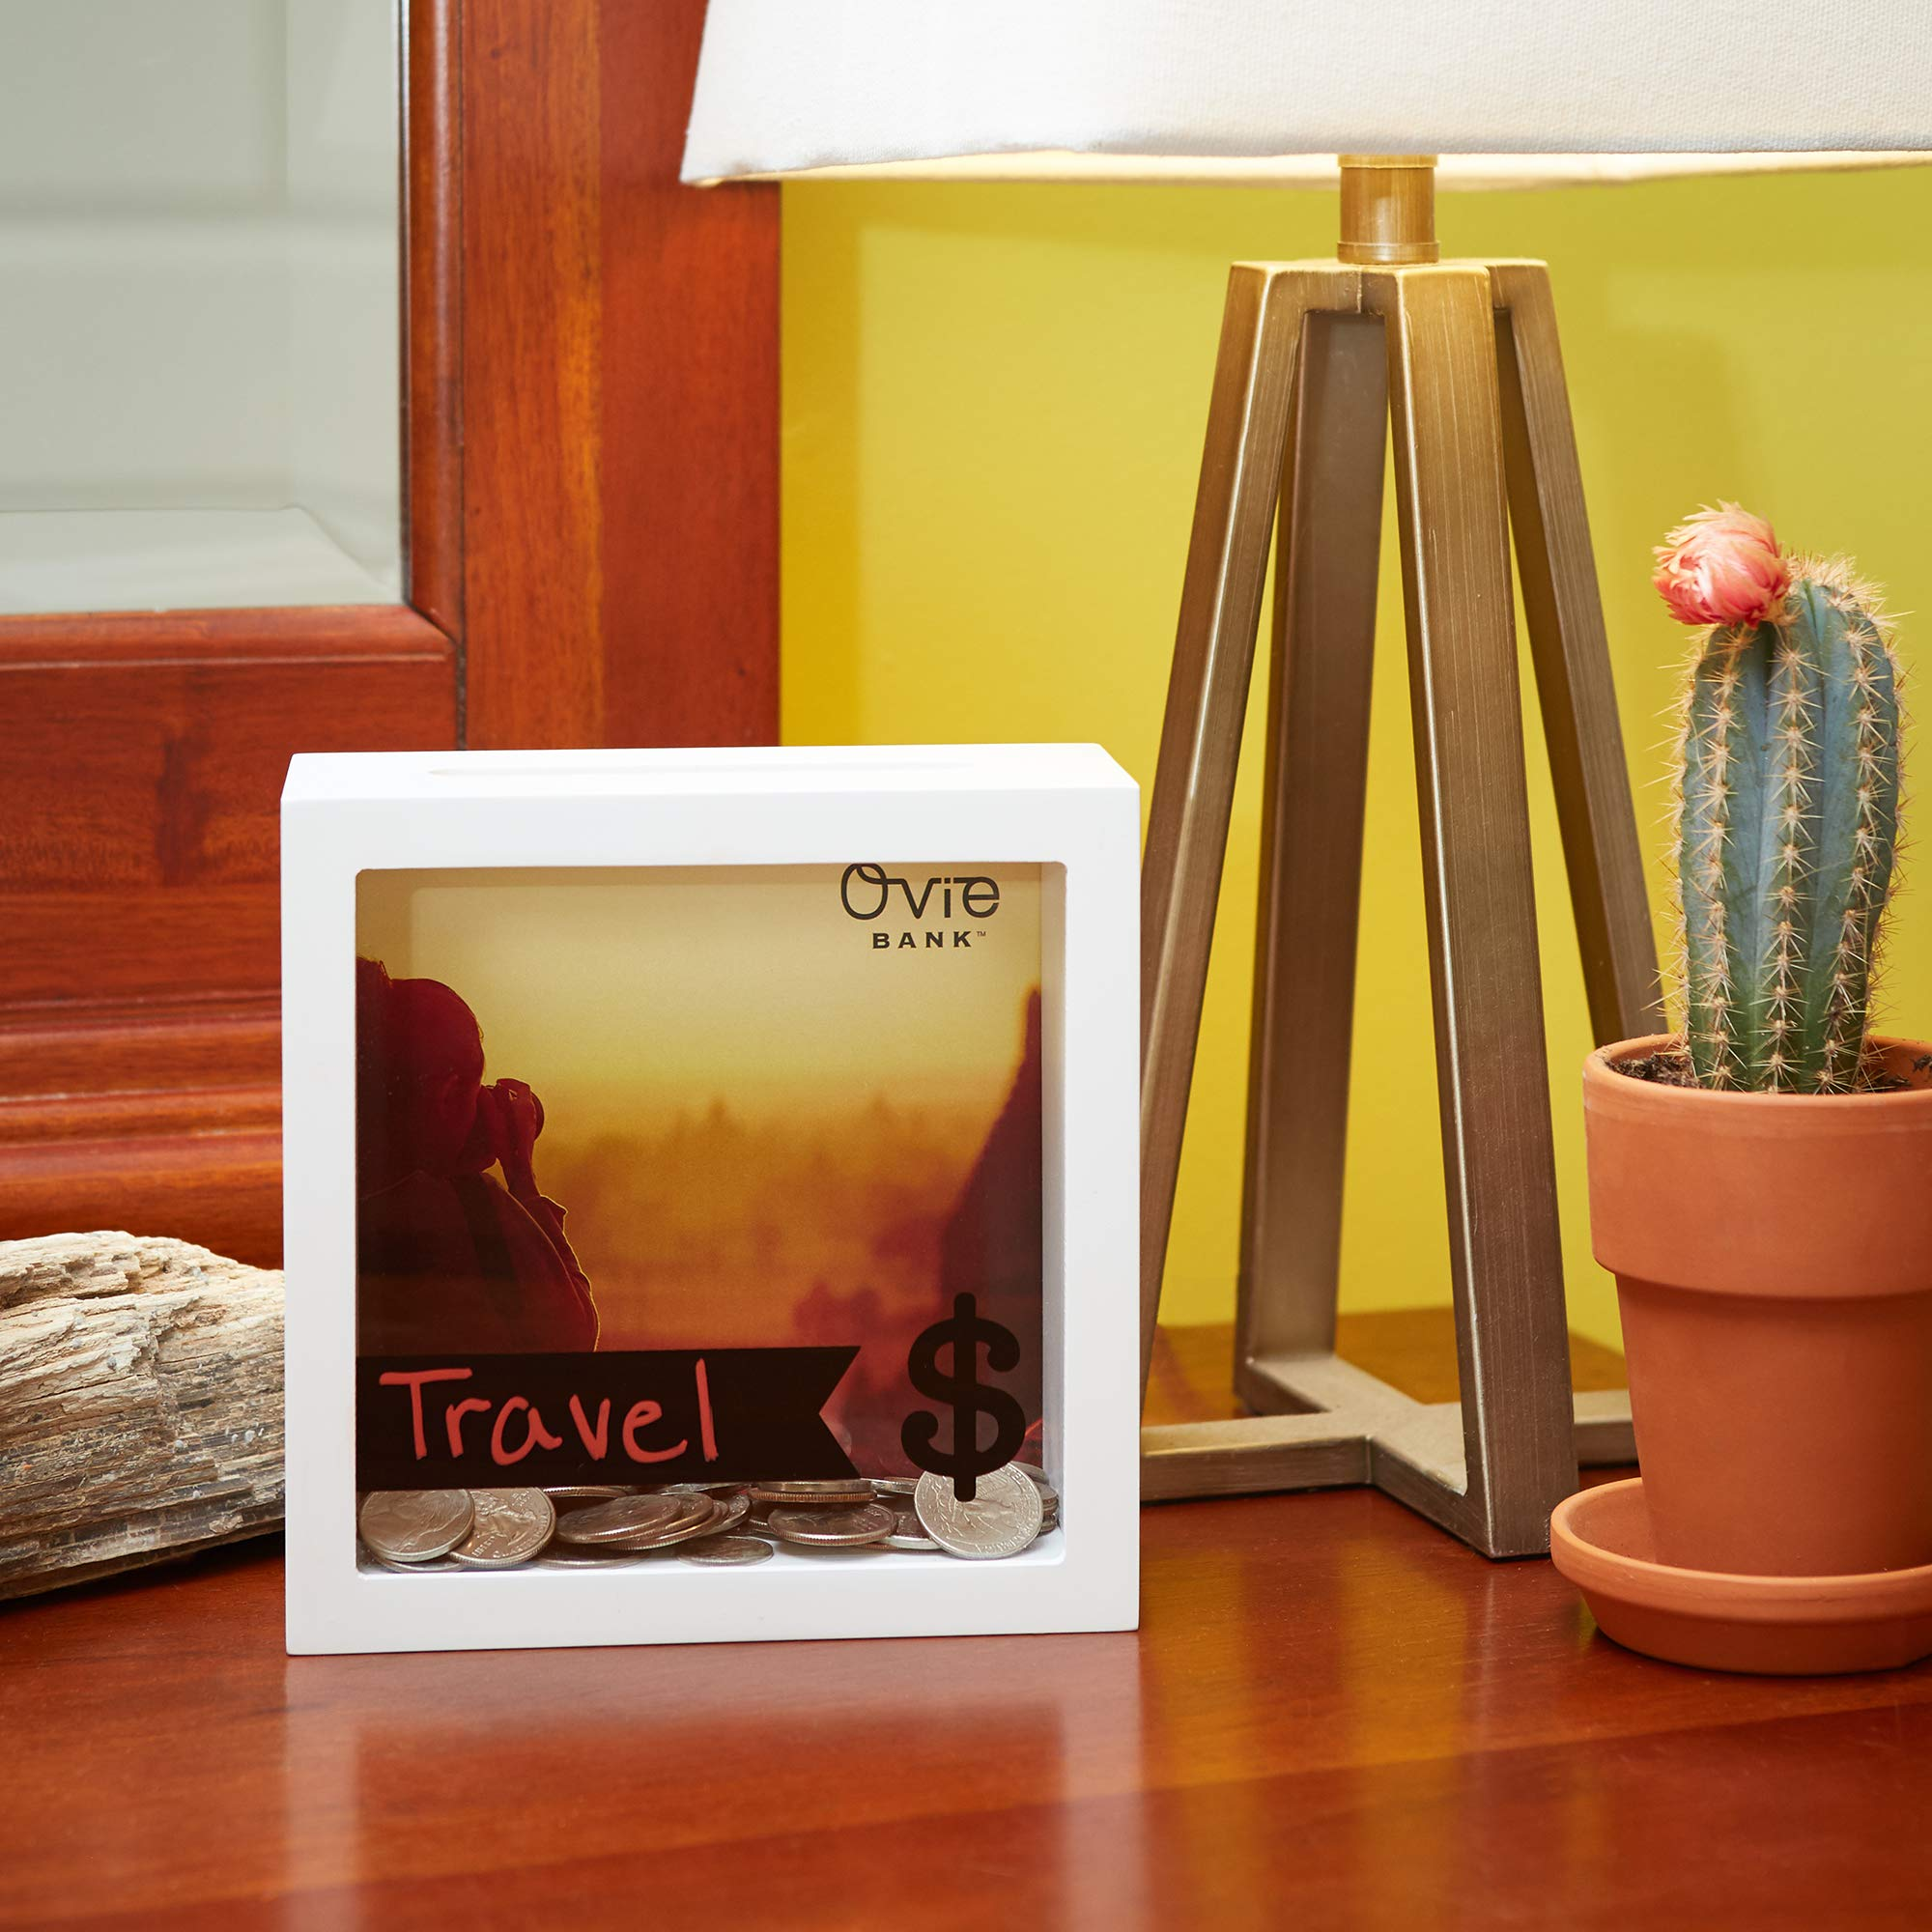 OVIE Adult Piggy Bank $ - Shadow Box with Wood Frame - Keep in Kitchen to Track Vacation/Honeymoon/Wedding/Adventure Funds - 6X6 Frames - Clear Glass/Picture Background/Colored Markers by OVIE (Image #8)